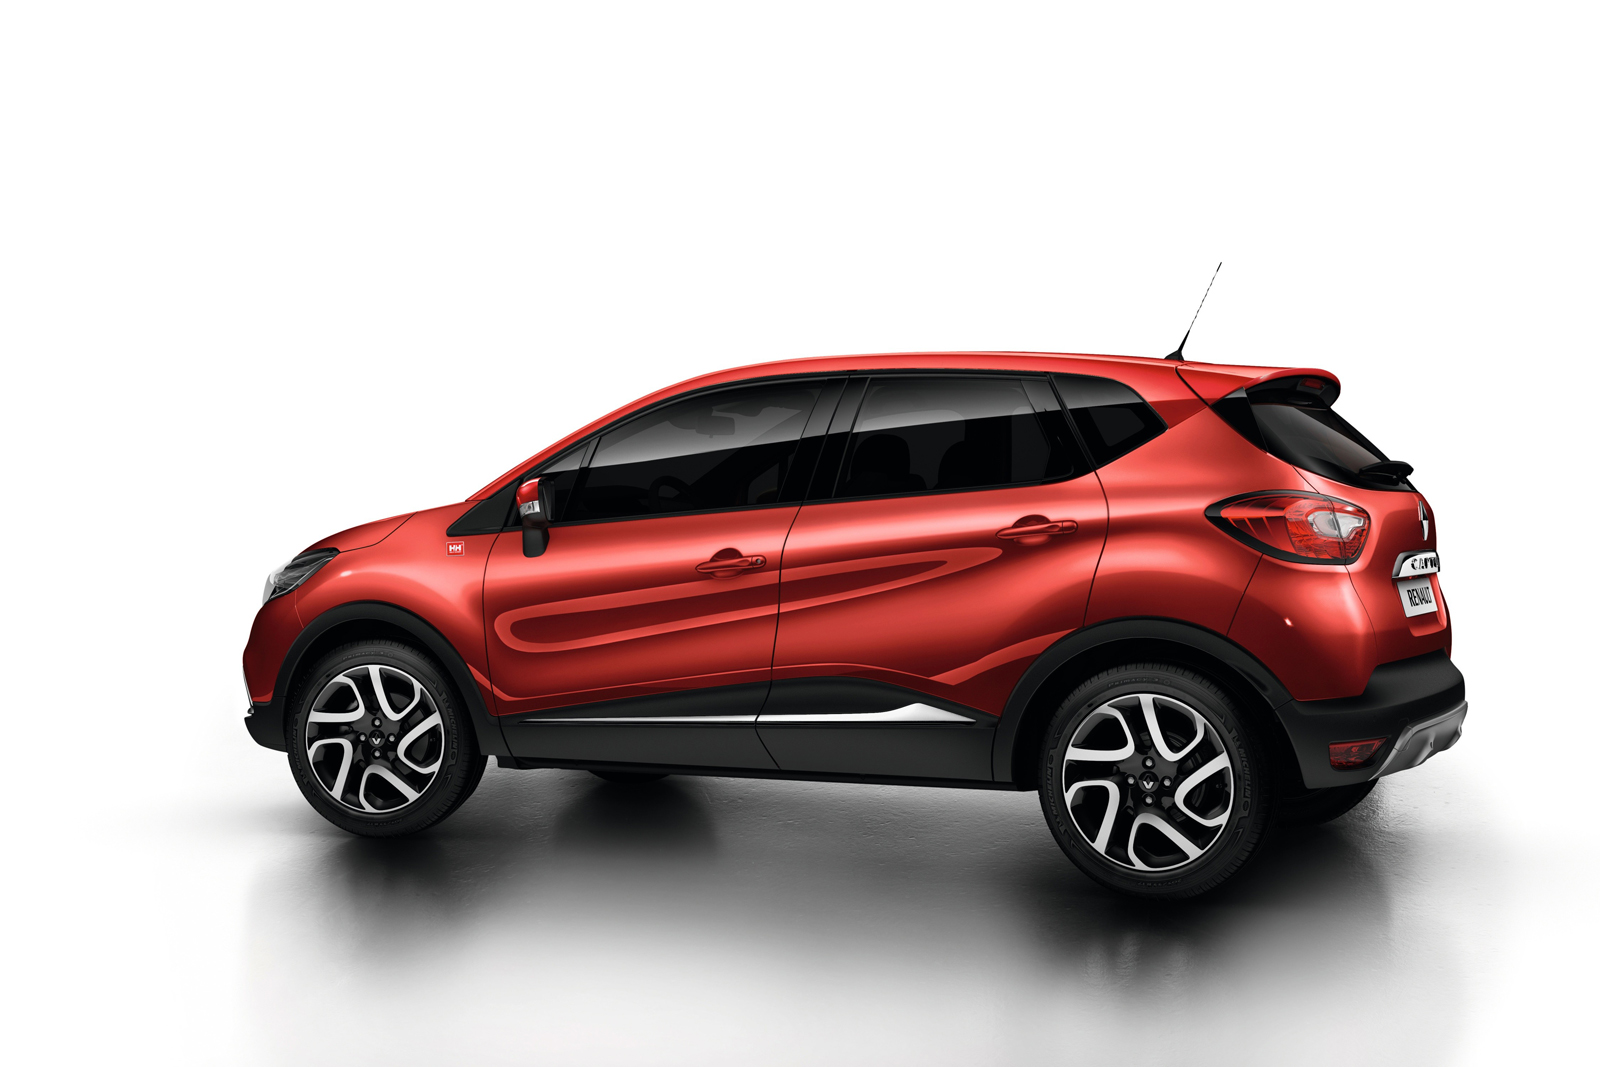 2014 renault captur helly hansen gets detailed turkeycarblog for Renault captur grigia